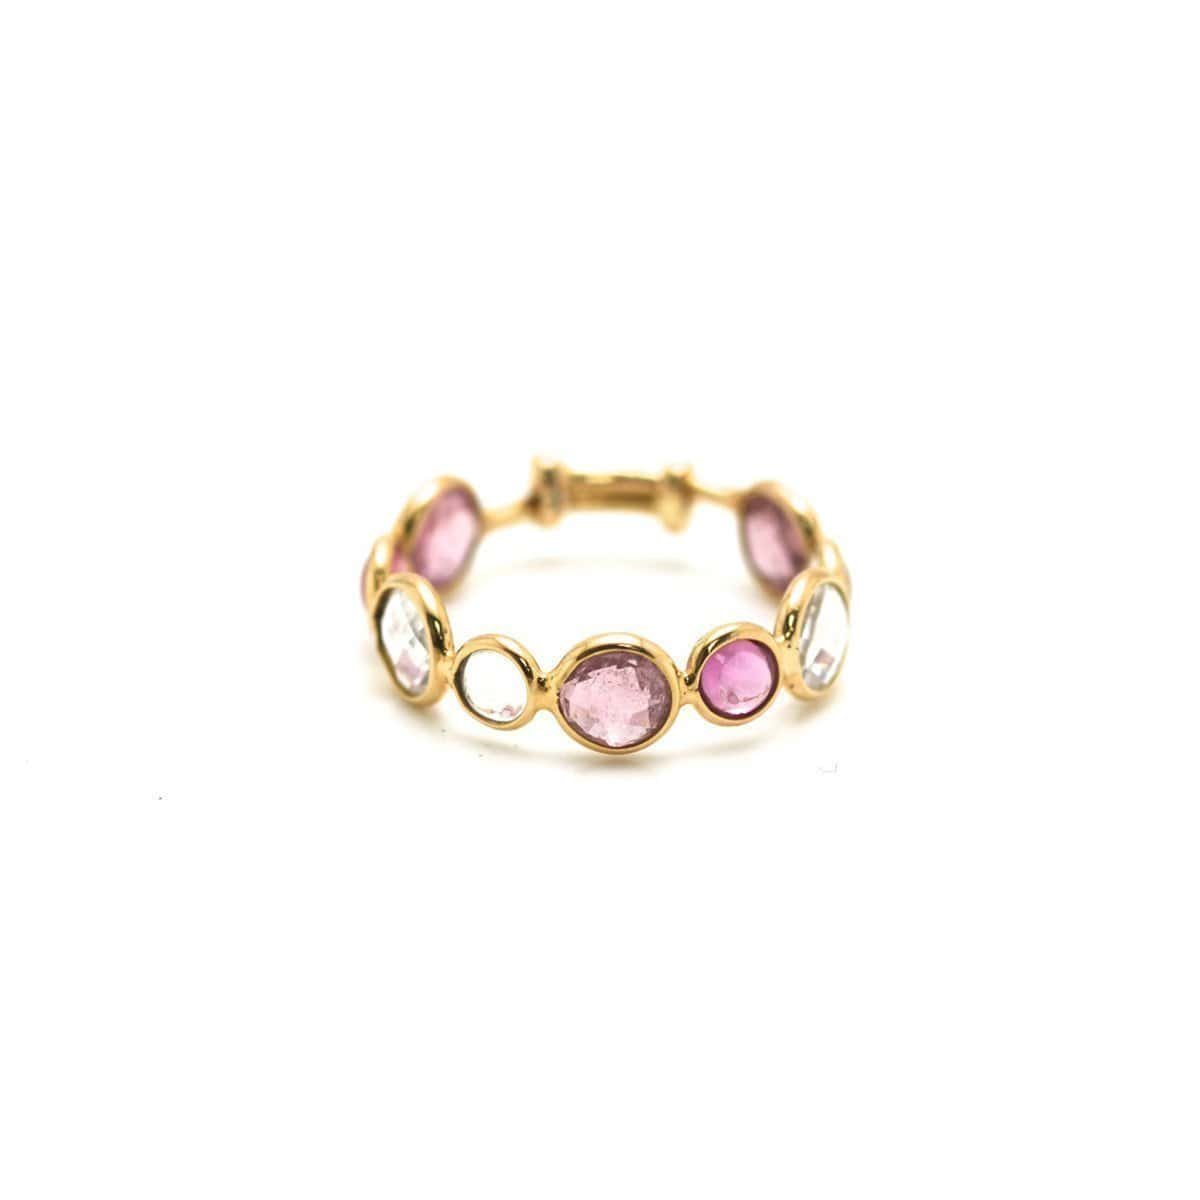 Multi-Gemstone Stackable Ring Band in 18kt Yellow Gold